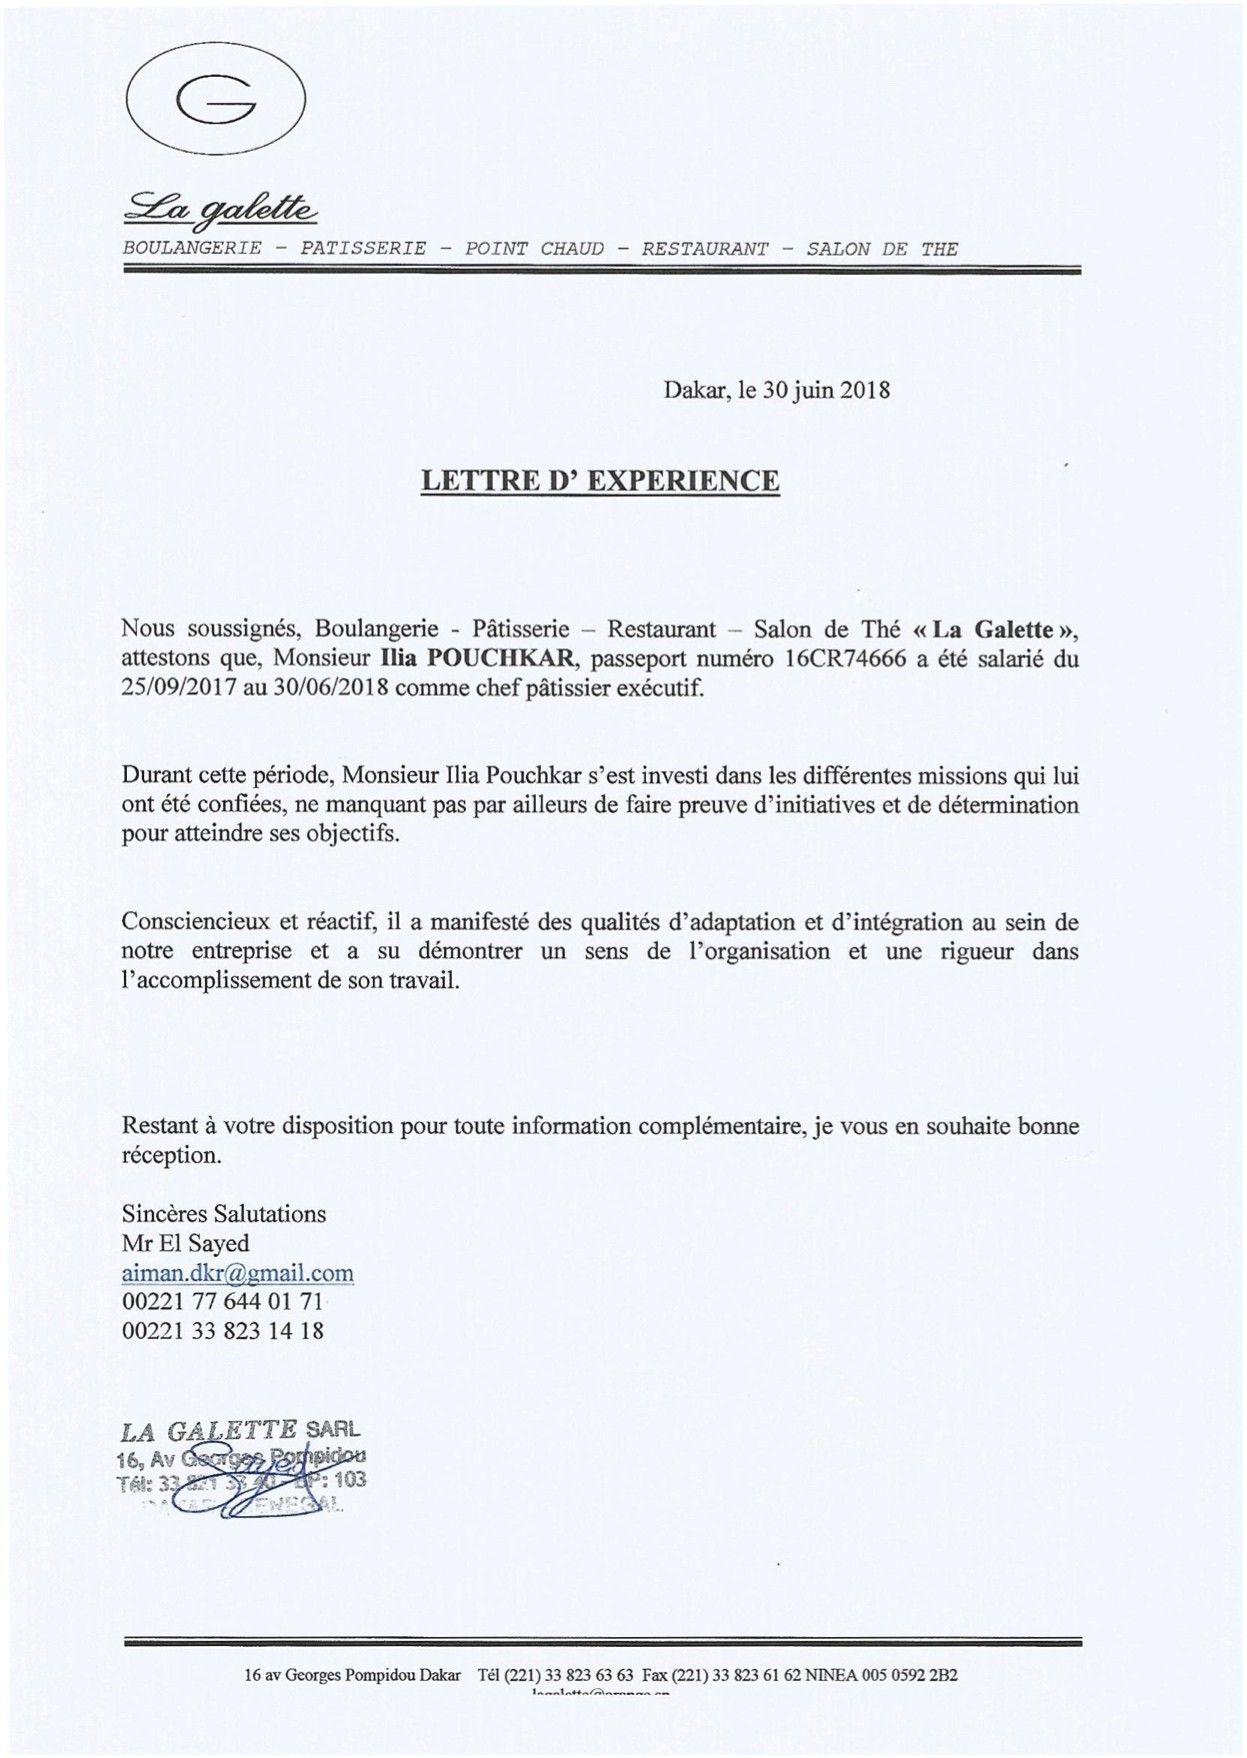 Work Experience Letter Of Experience The Modern Rules Of Work Experience Letter Of Experienc Work Experience Lettering Schedule Template